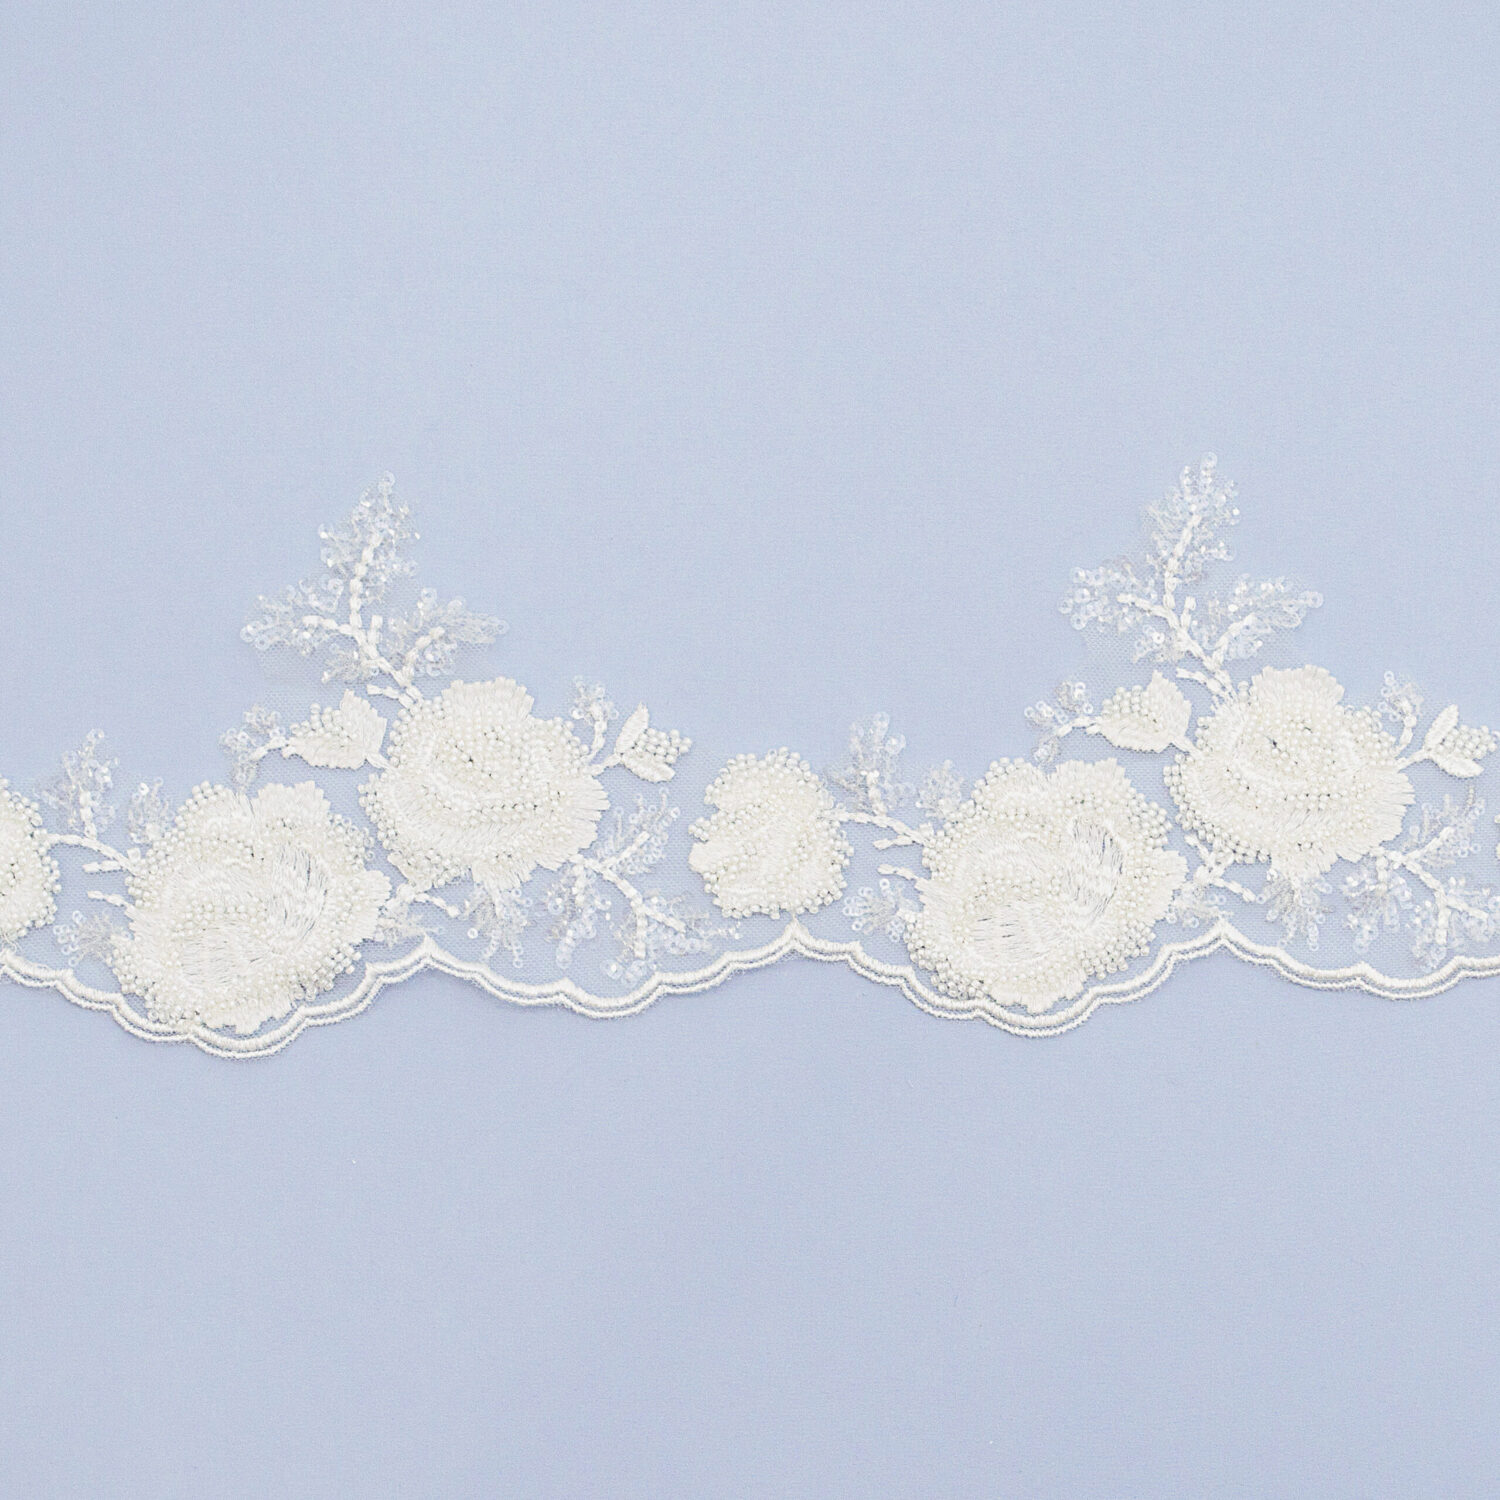 Embroidered lace trim AM13865DQF2-N44